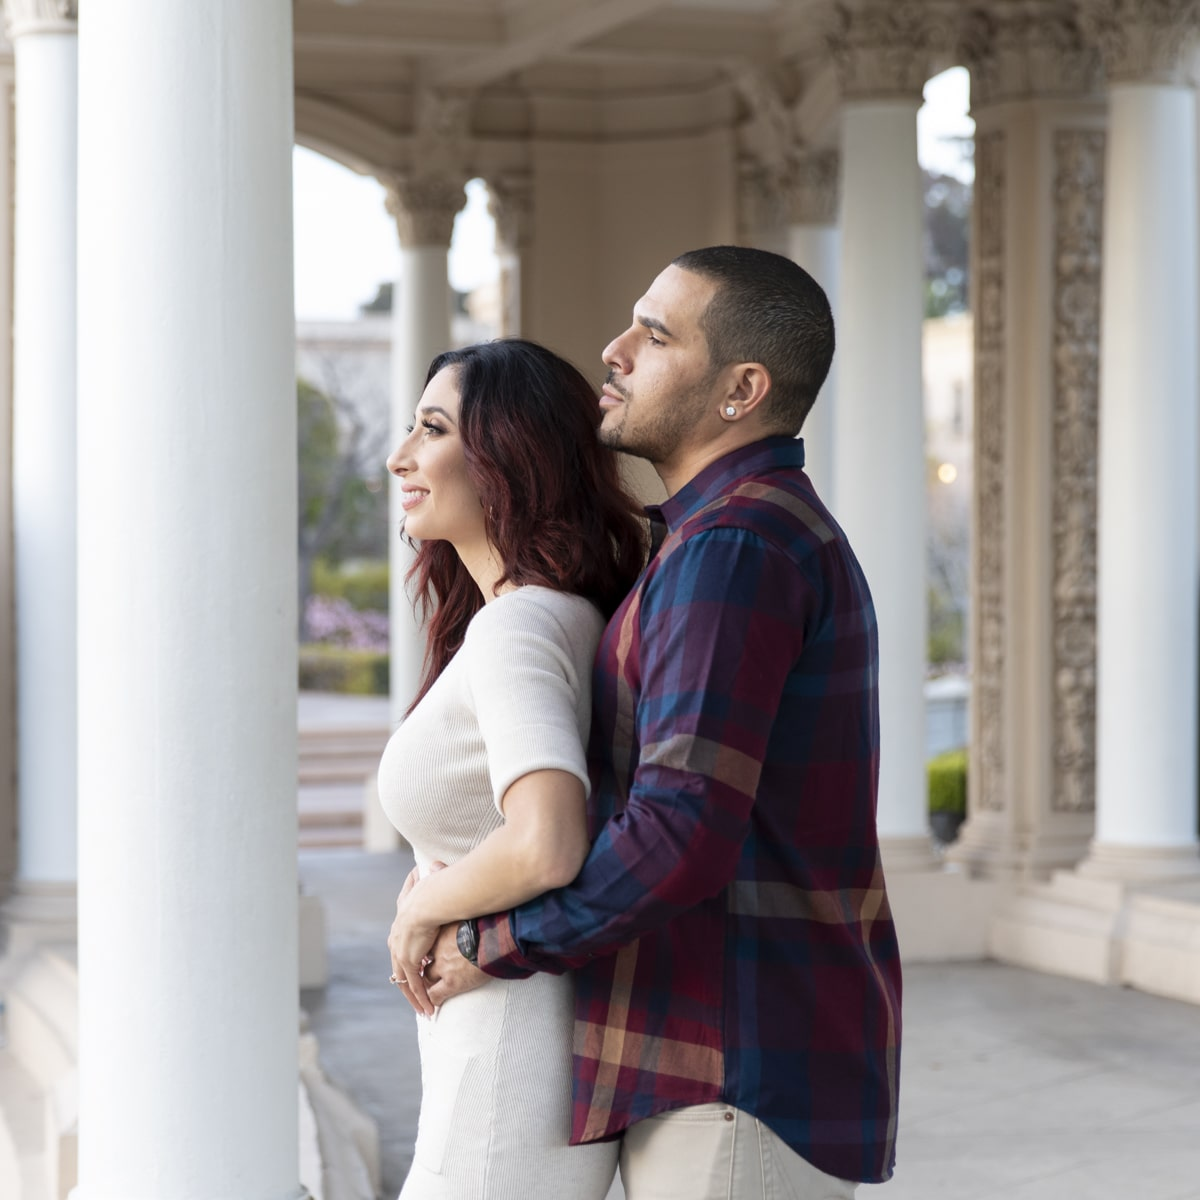 Balboa-Park-Engagement-Photography-33